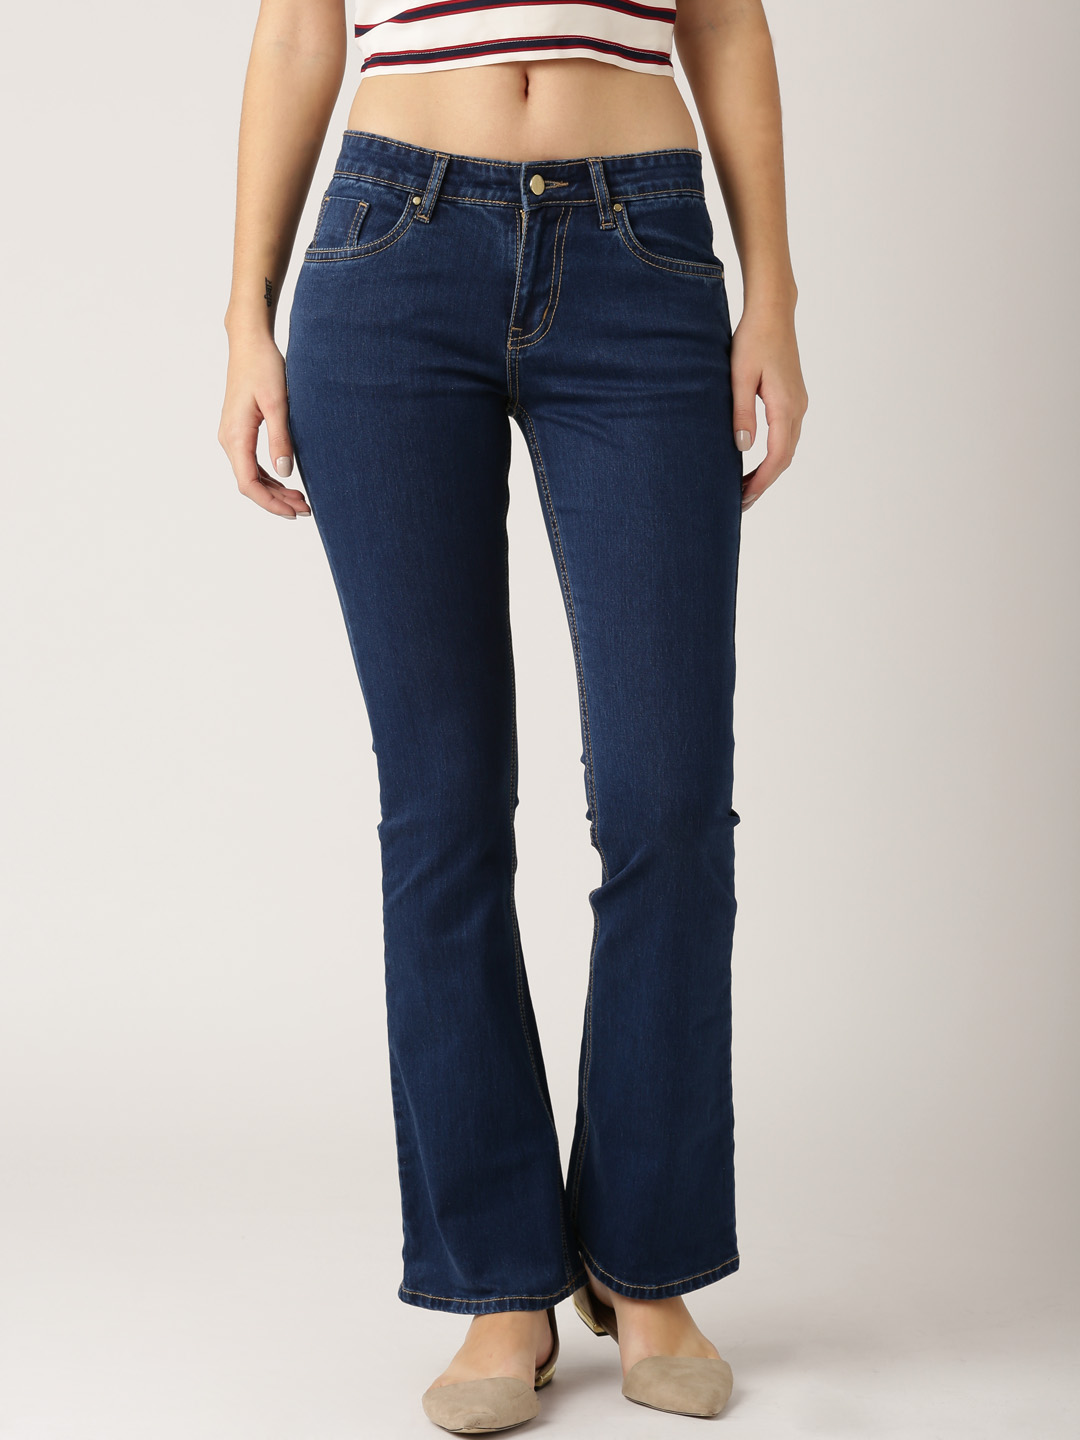 buy bootcut jeans online india